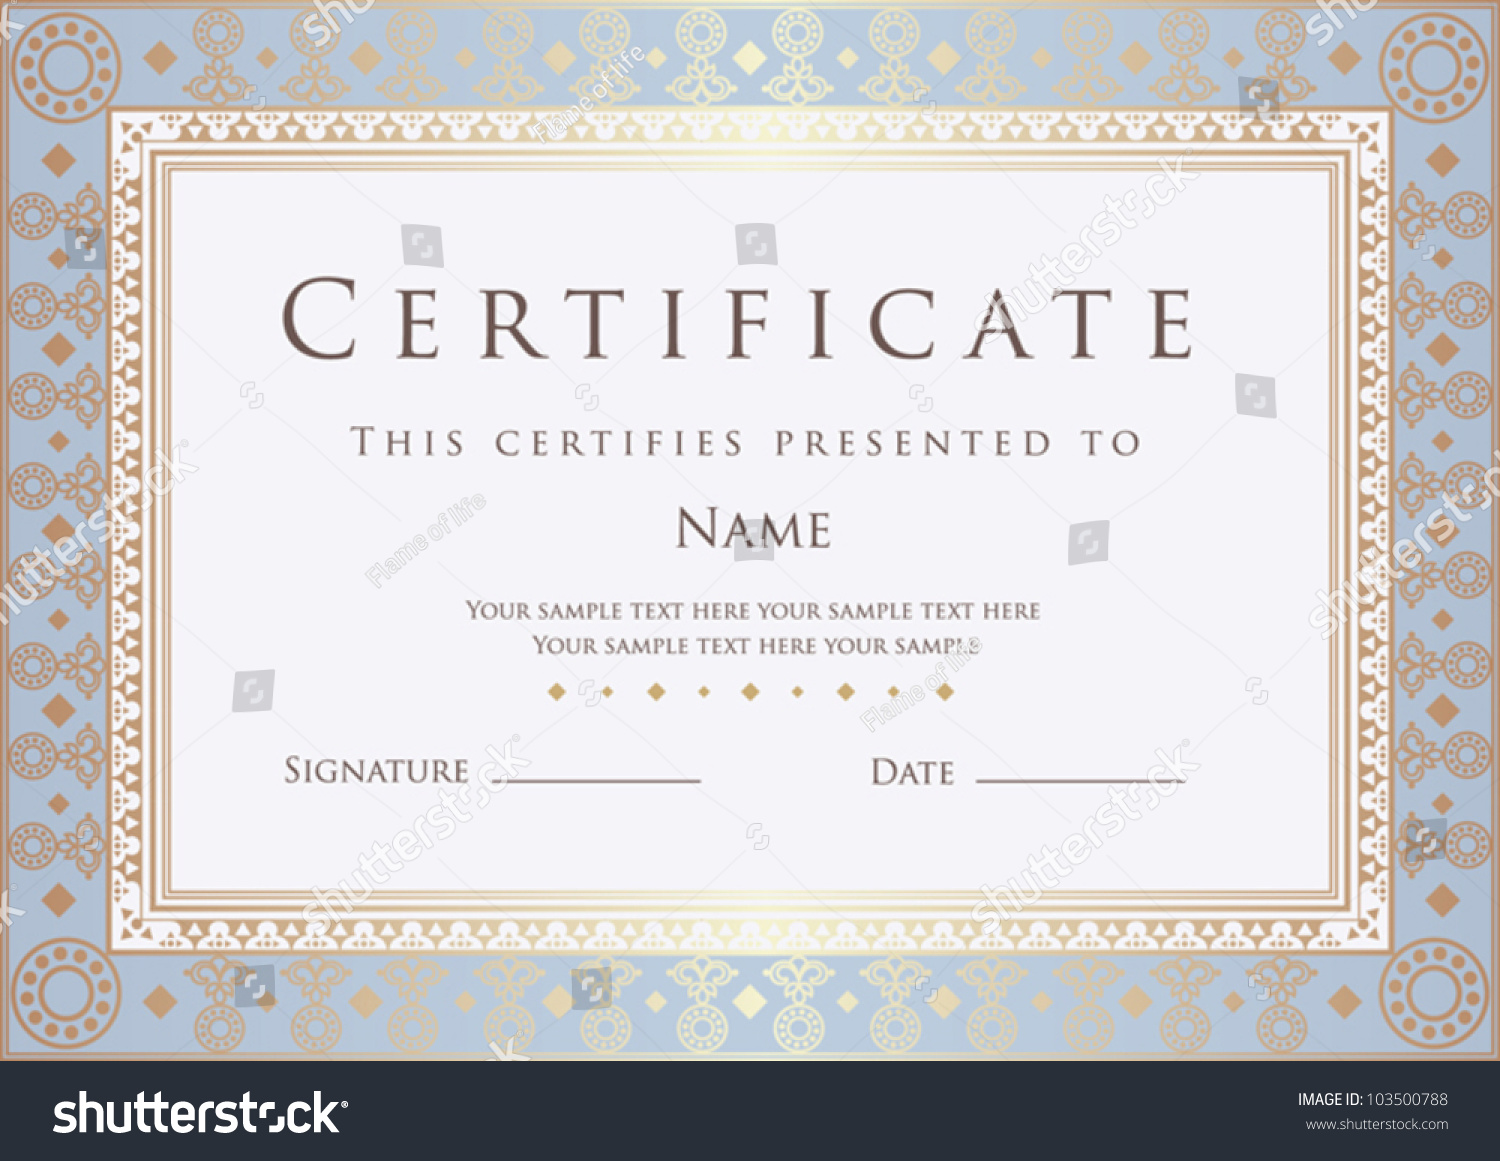 Horizontal Certificate Completion Template Golden Floral – Official Certificate Template